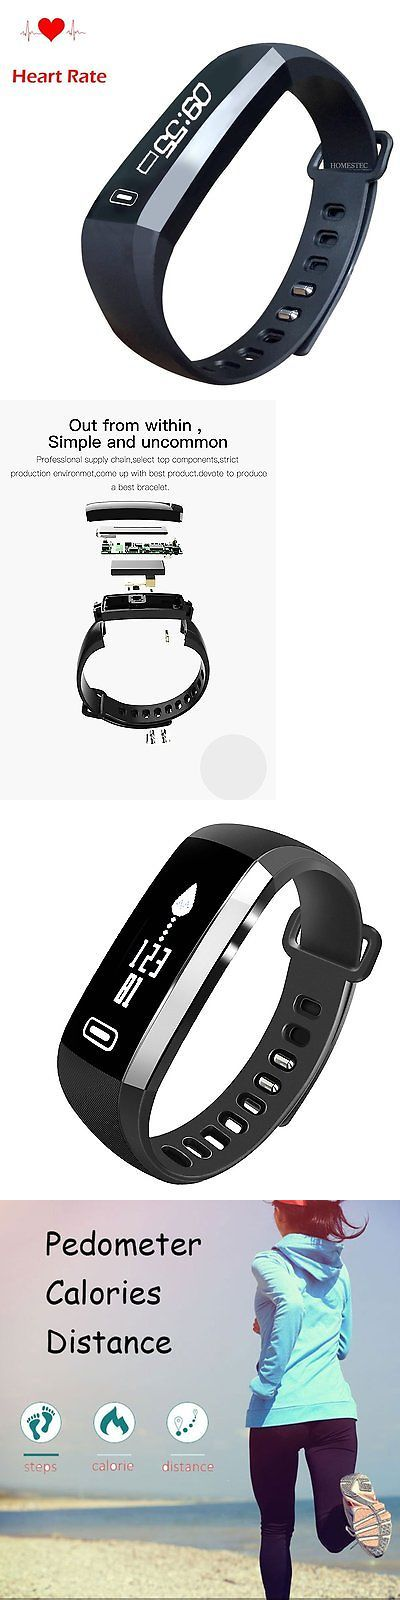 Heart Rate Monitors 15277: Homestec S2b Smart Watch Fitness Tracker With Heart Pulse Rate Monitor Sleepin -> BUY IT NOW ONLY: $31.95 on eBay!